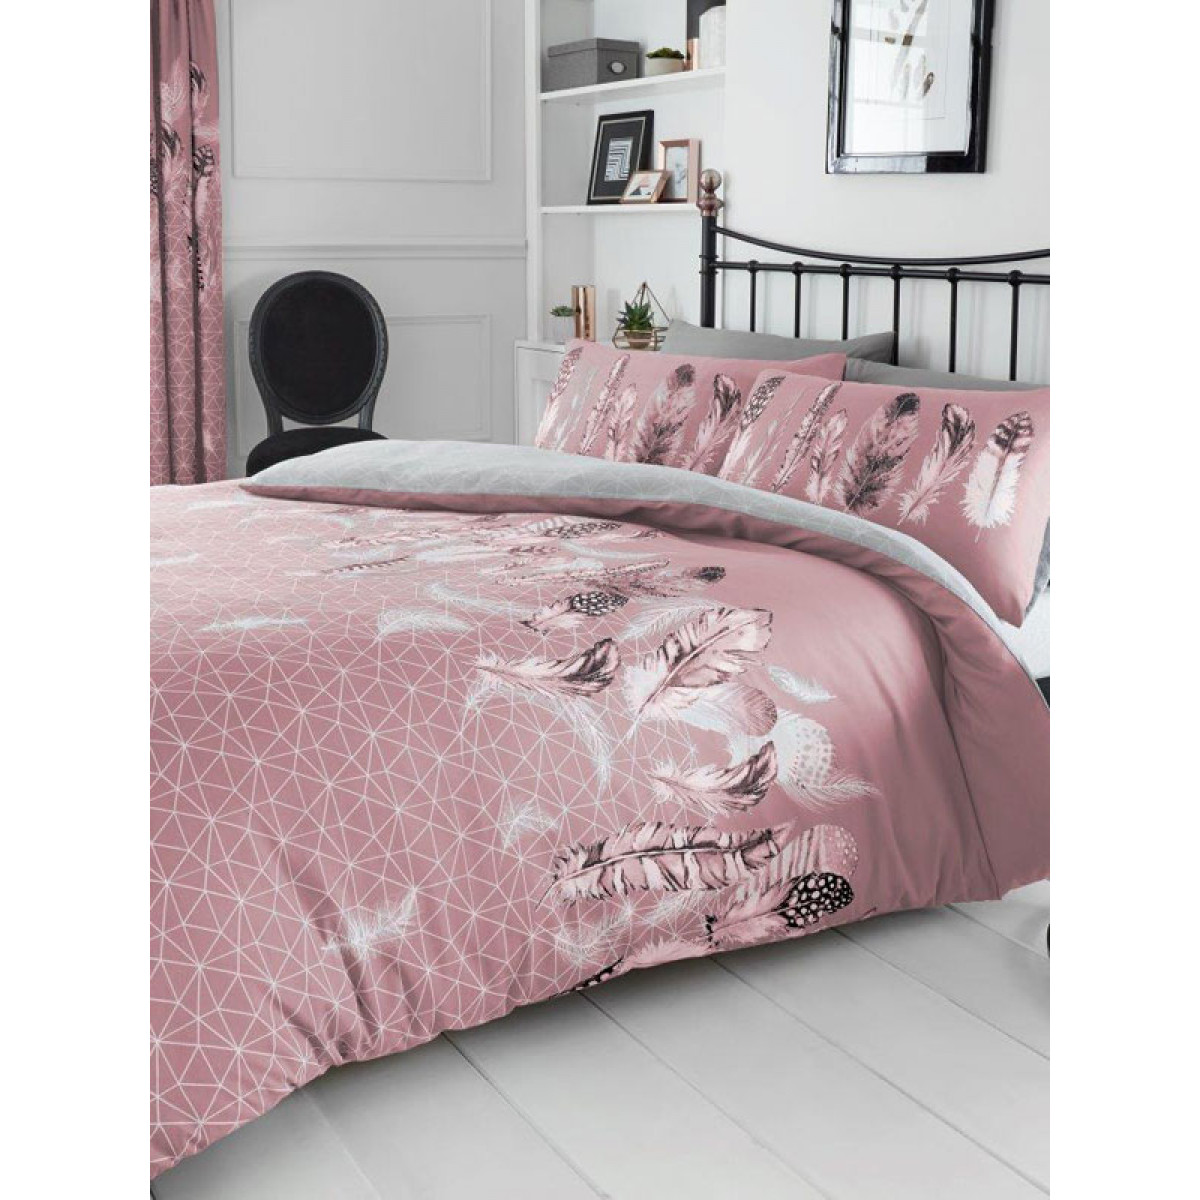 Geometric Feathers King Duvet Cover And Pillowcase Set Pink Bedding